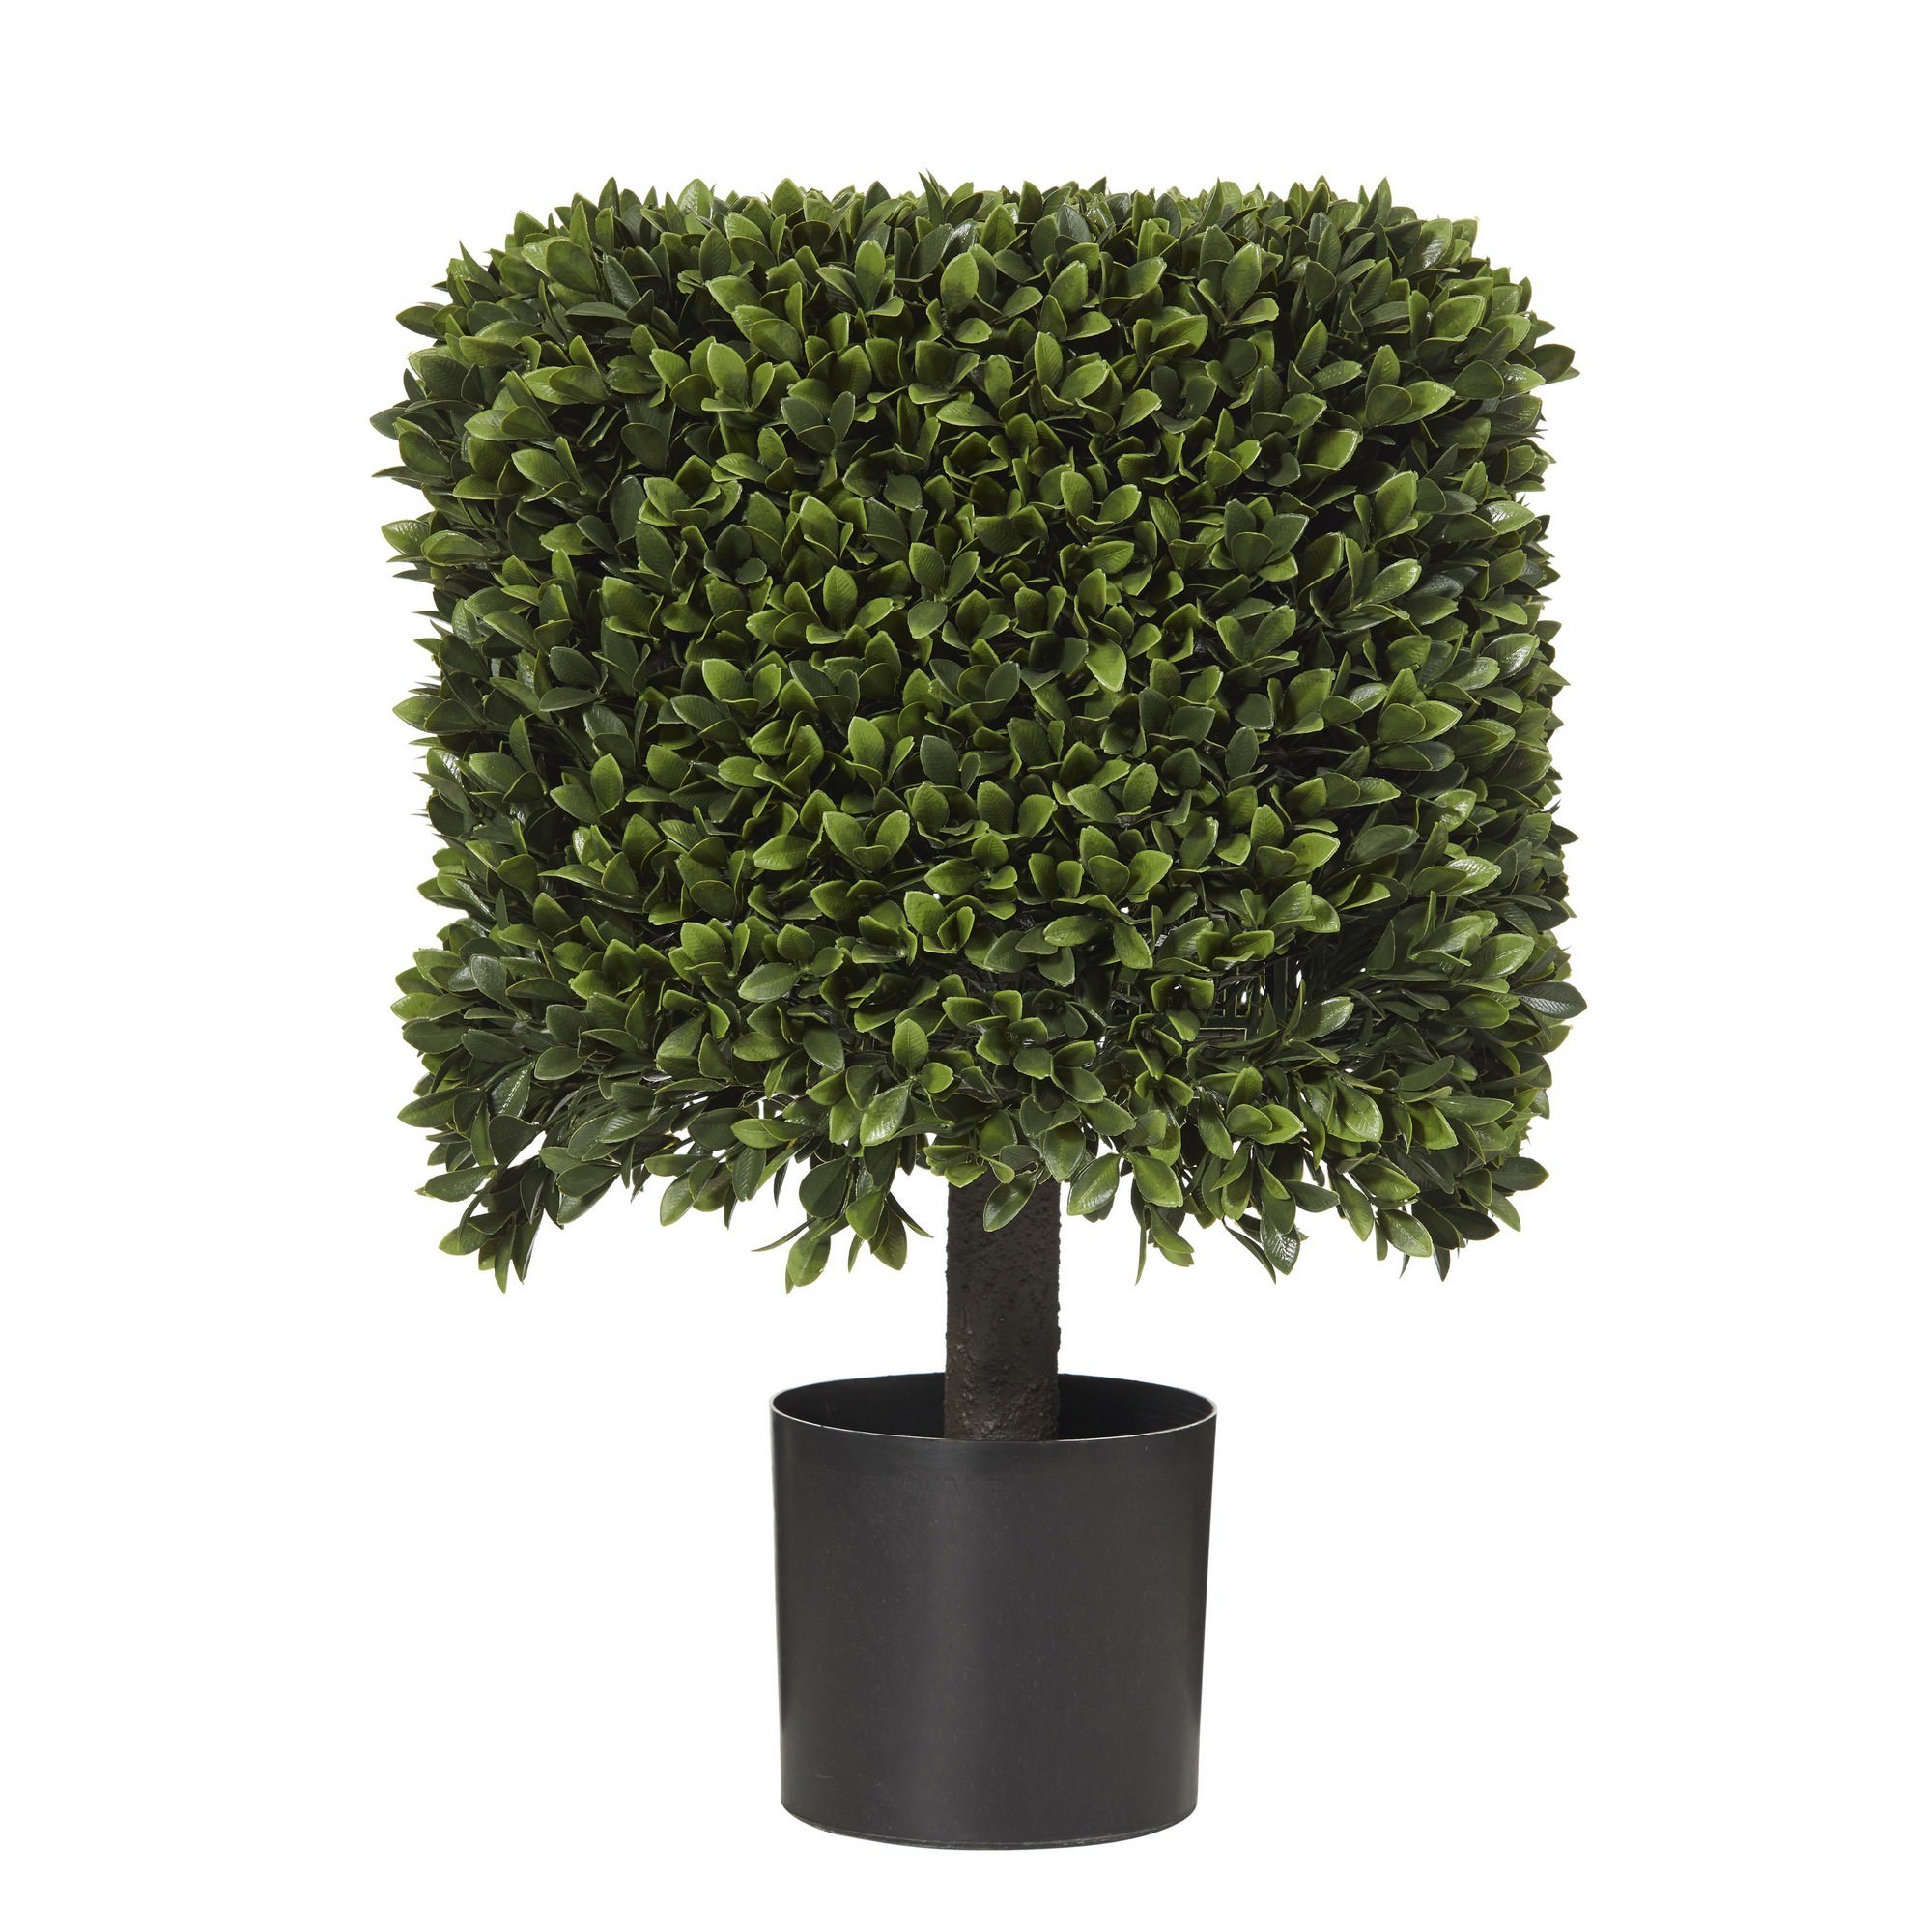 Potted Artificial Box Leaf Hedge Topiary, 58cm